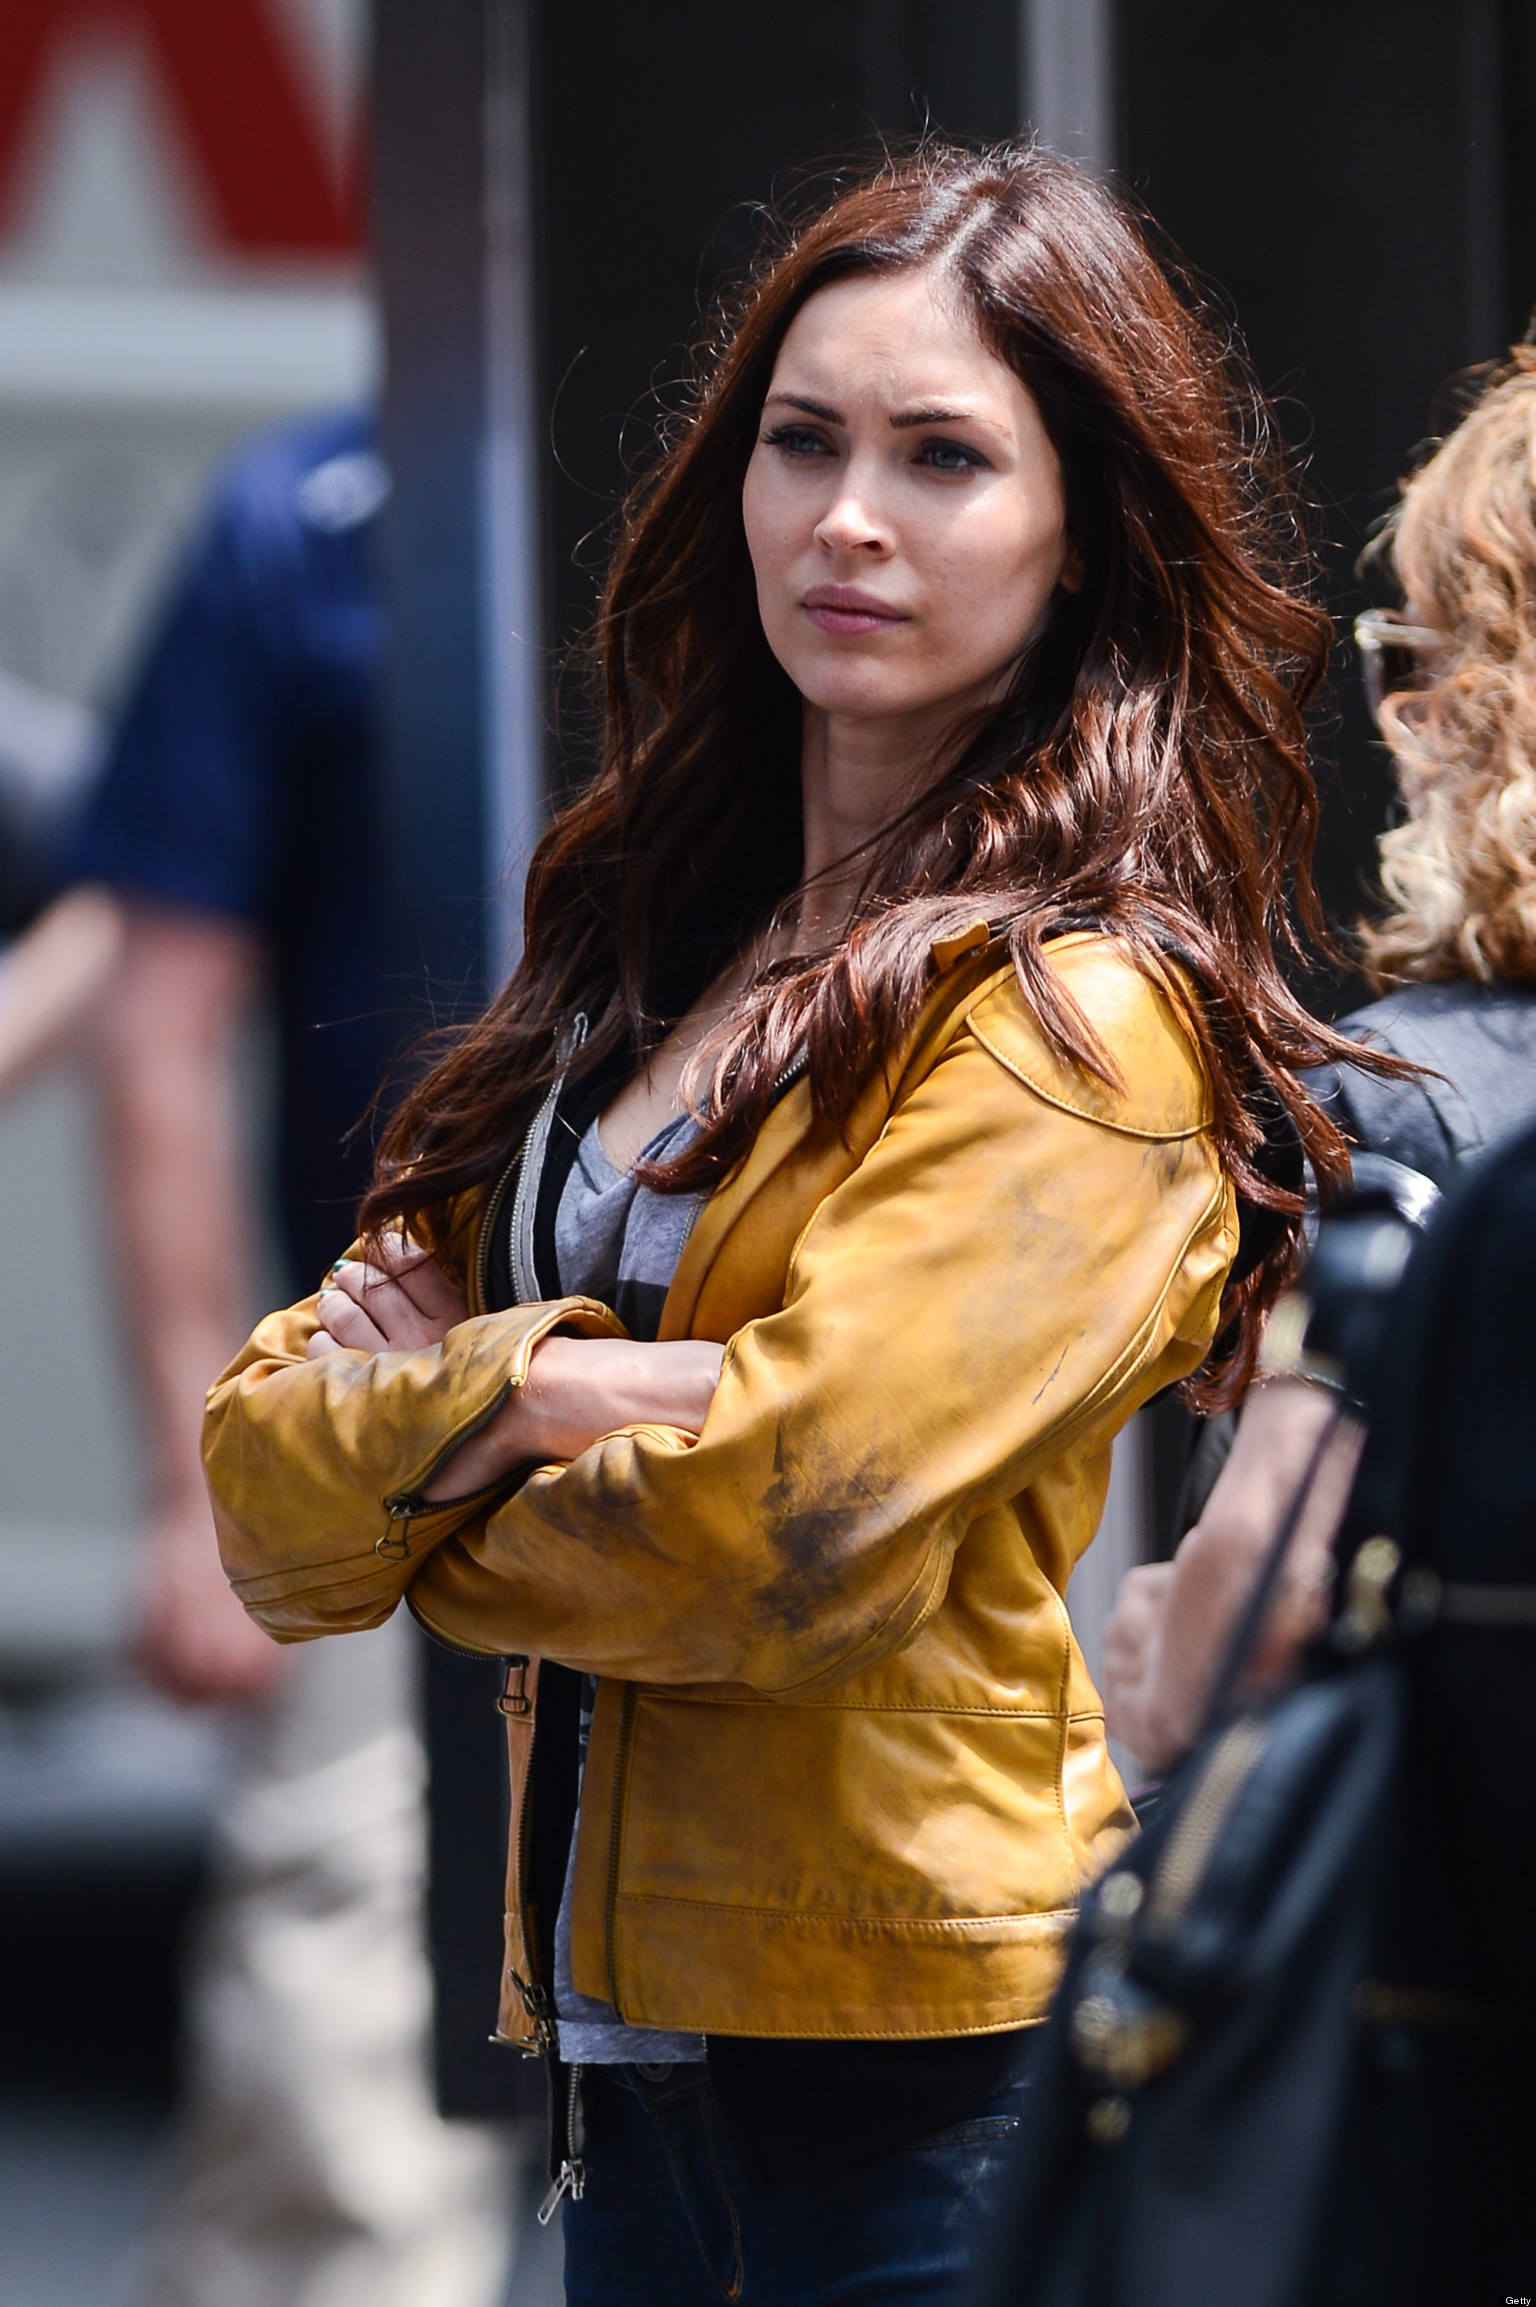 Megan Fox In 'Transformers 4'? Rumor Has Actress Returning ...